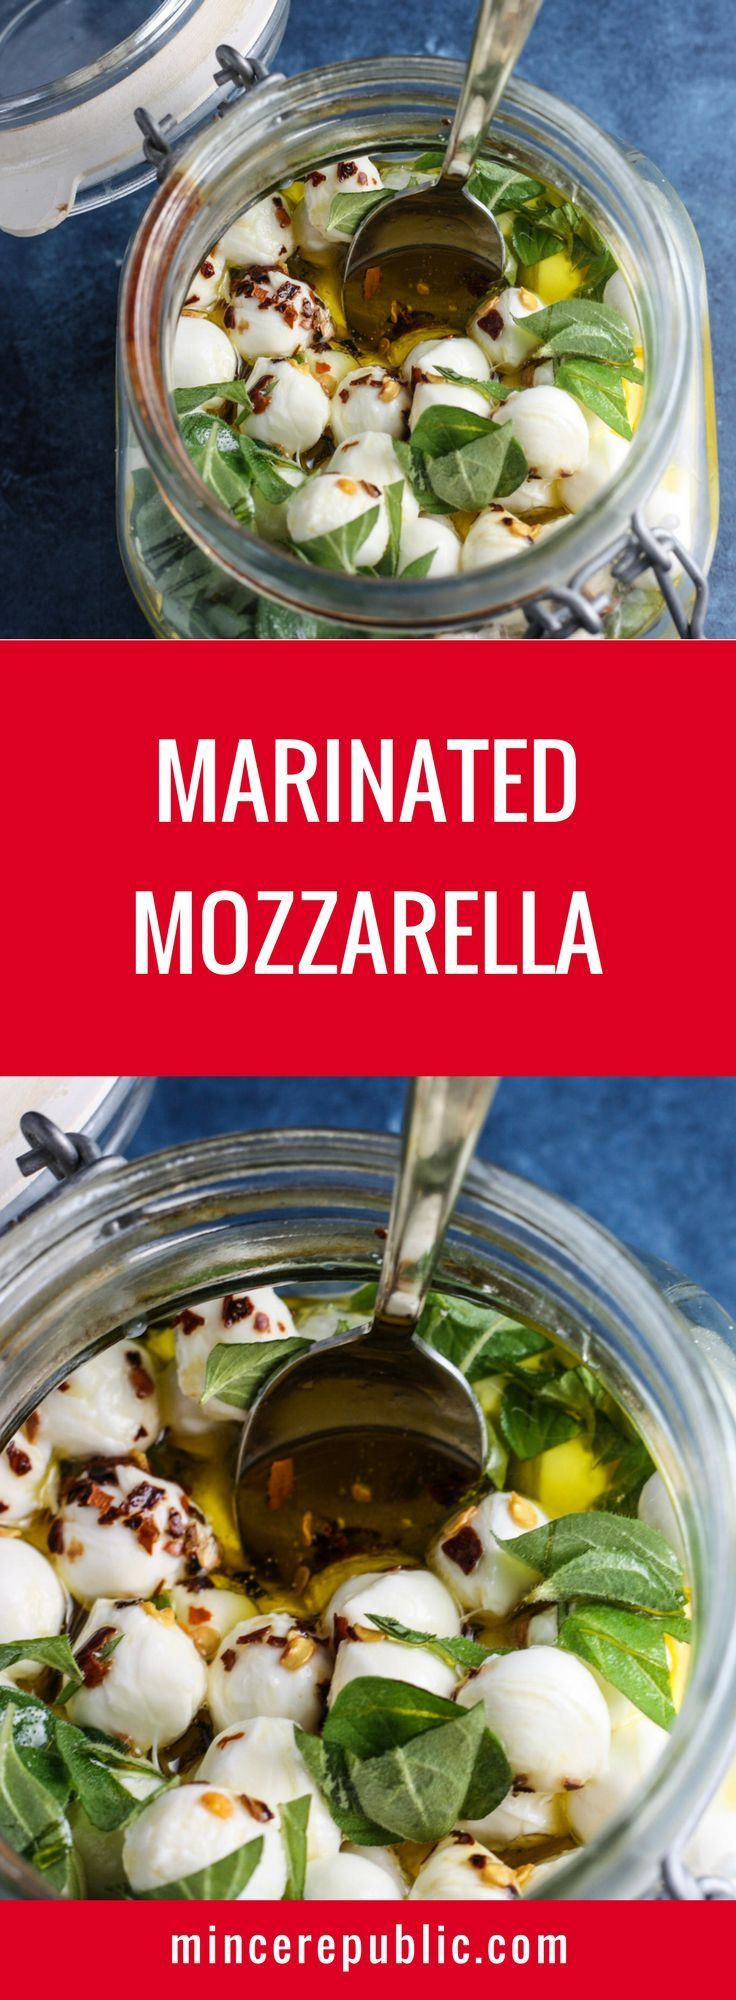 Marinated Mozzarella recipe | marinated cheese perfect for a cheese plate or charcuterie platter | mincerepublic.com